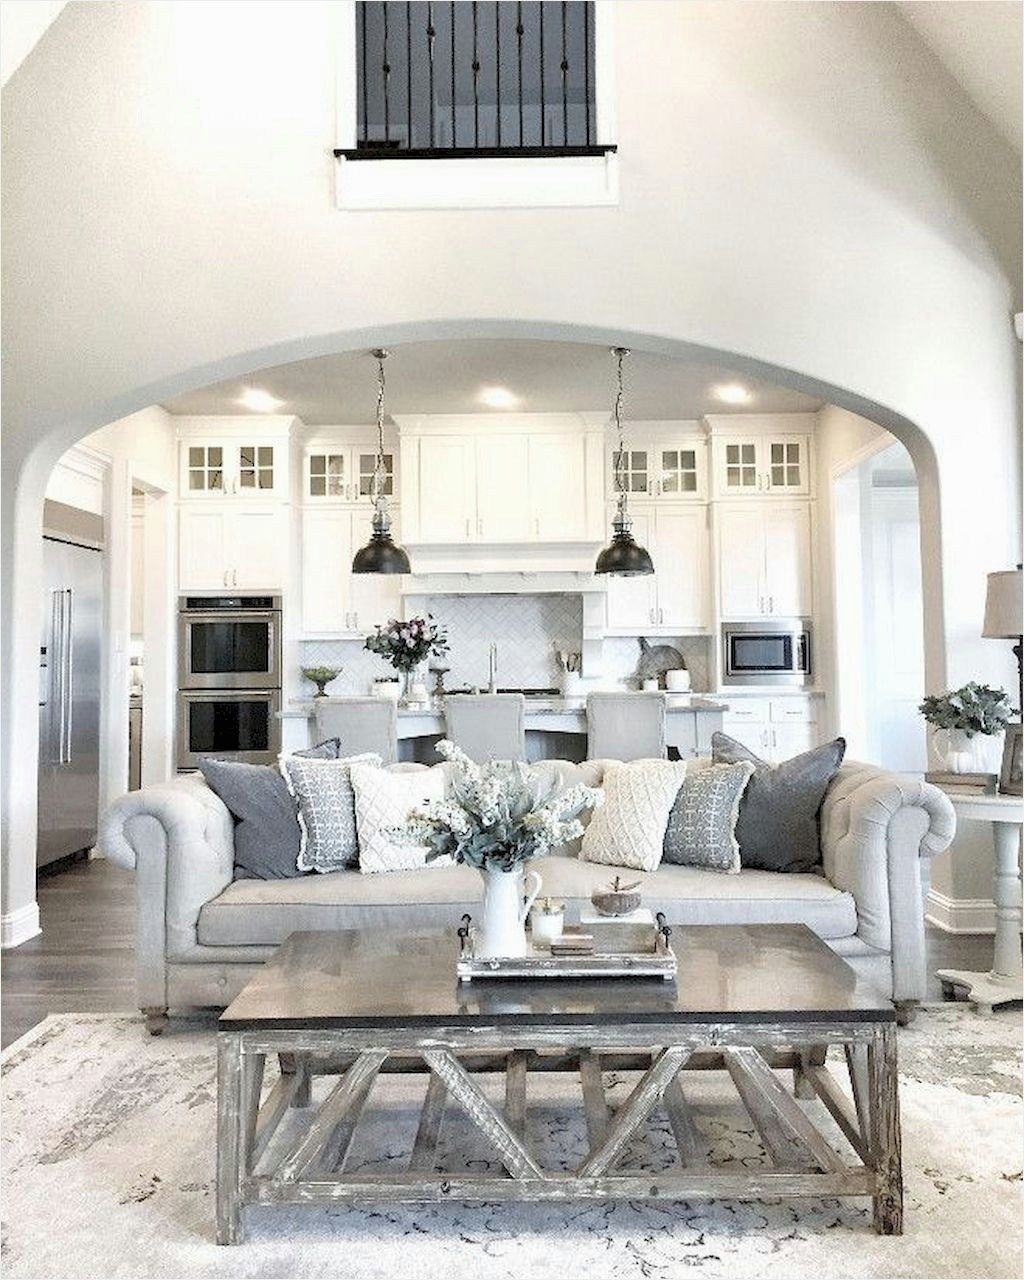 Farmhouse living room decorating ideas also rh pinterest